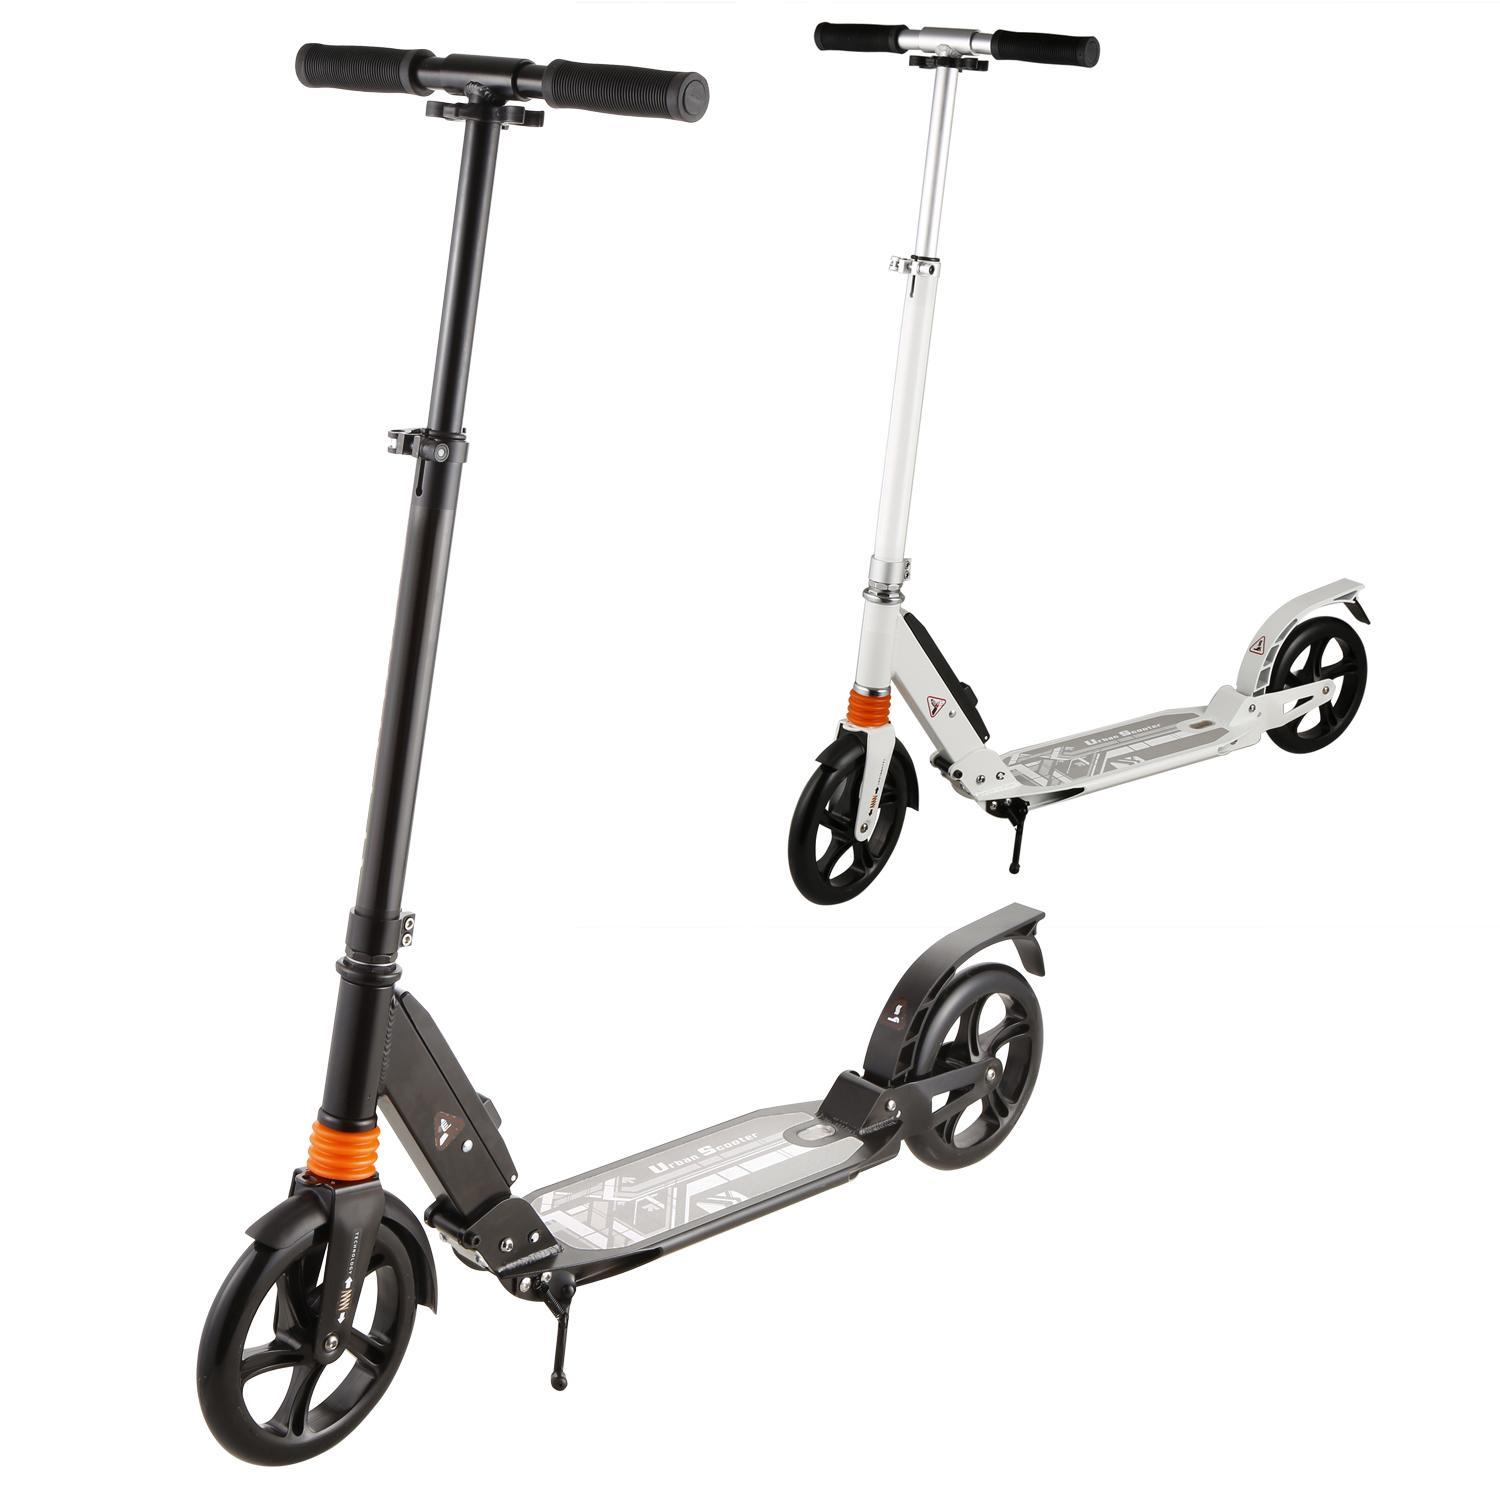 Adult Kick Scooter, Foldable Lightweight 3 Levels Adjustable Height 2-Wheel Kick Scooter for Teenager by